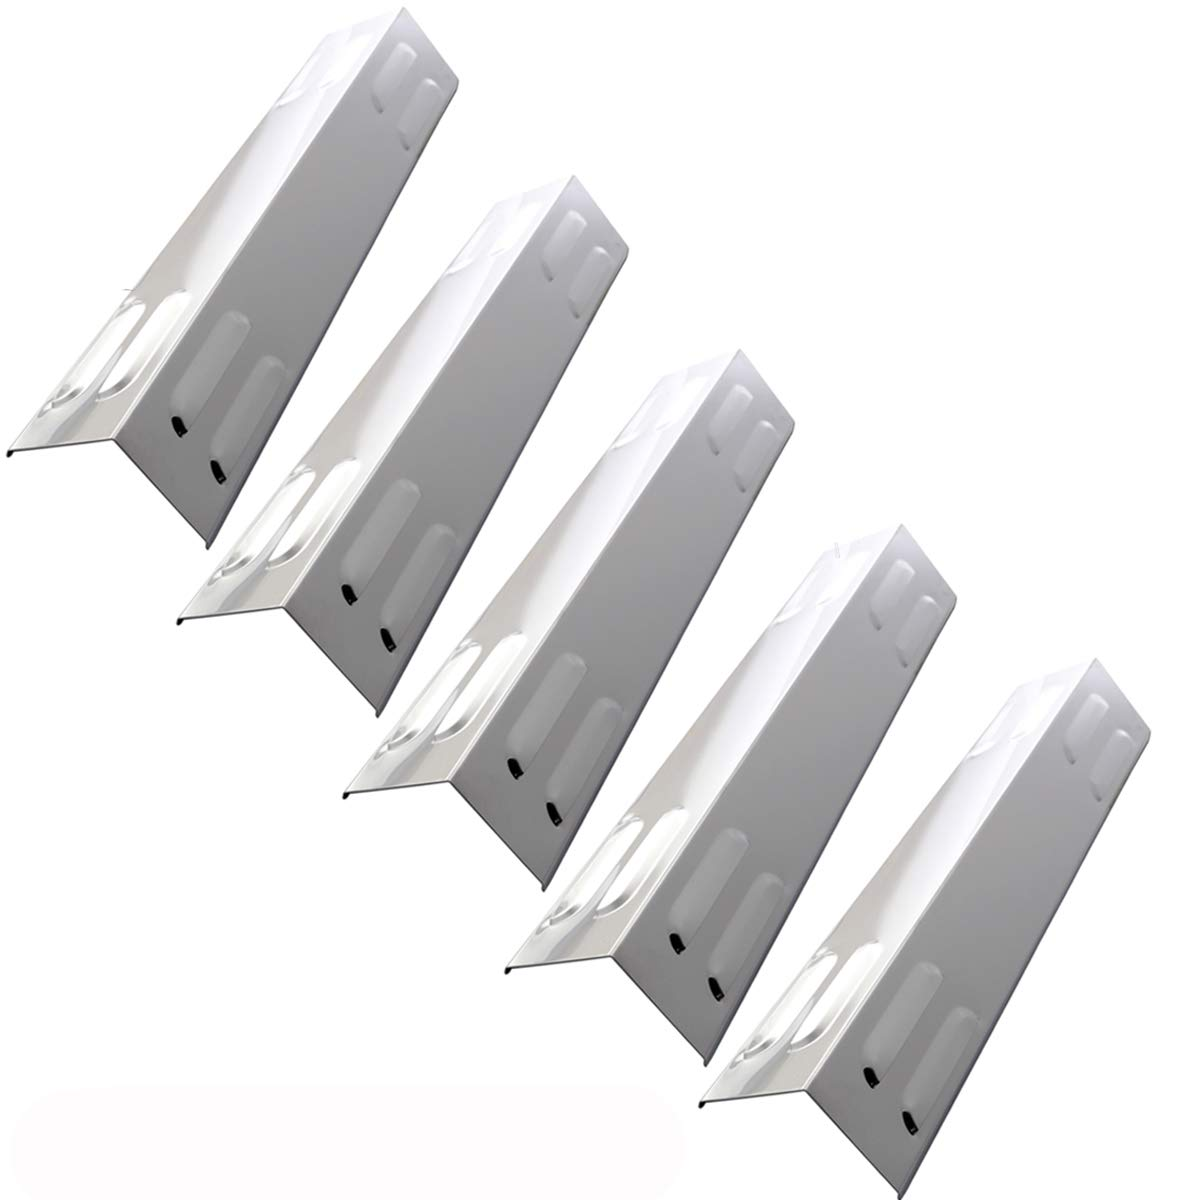 Hisencn (5-Pack Repair Parts Stainless Steel Heat Plate, Heat Tent, Burner Cover, Heat Shield 105-13003 Replacement for Dyna-Glow 5 Burner DGE 530/486 Series DGB390SNP-D, DGB390GNP-D Gas Grill Models